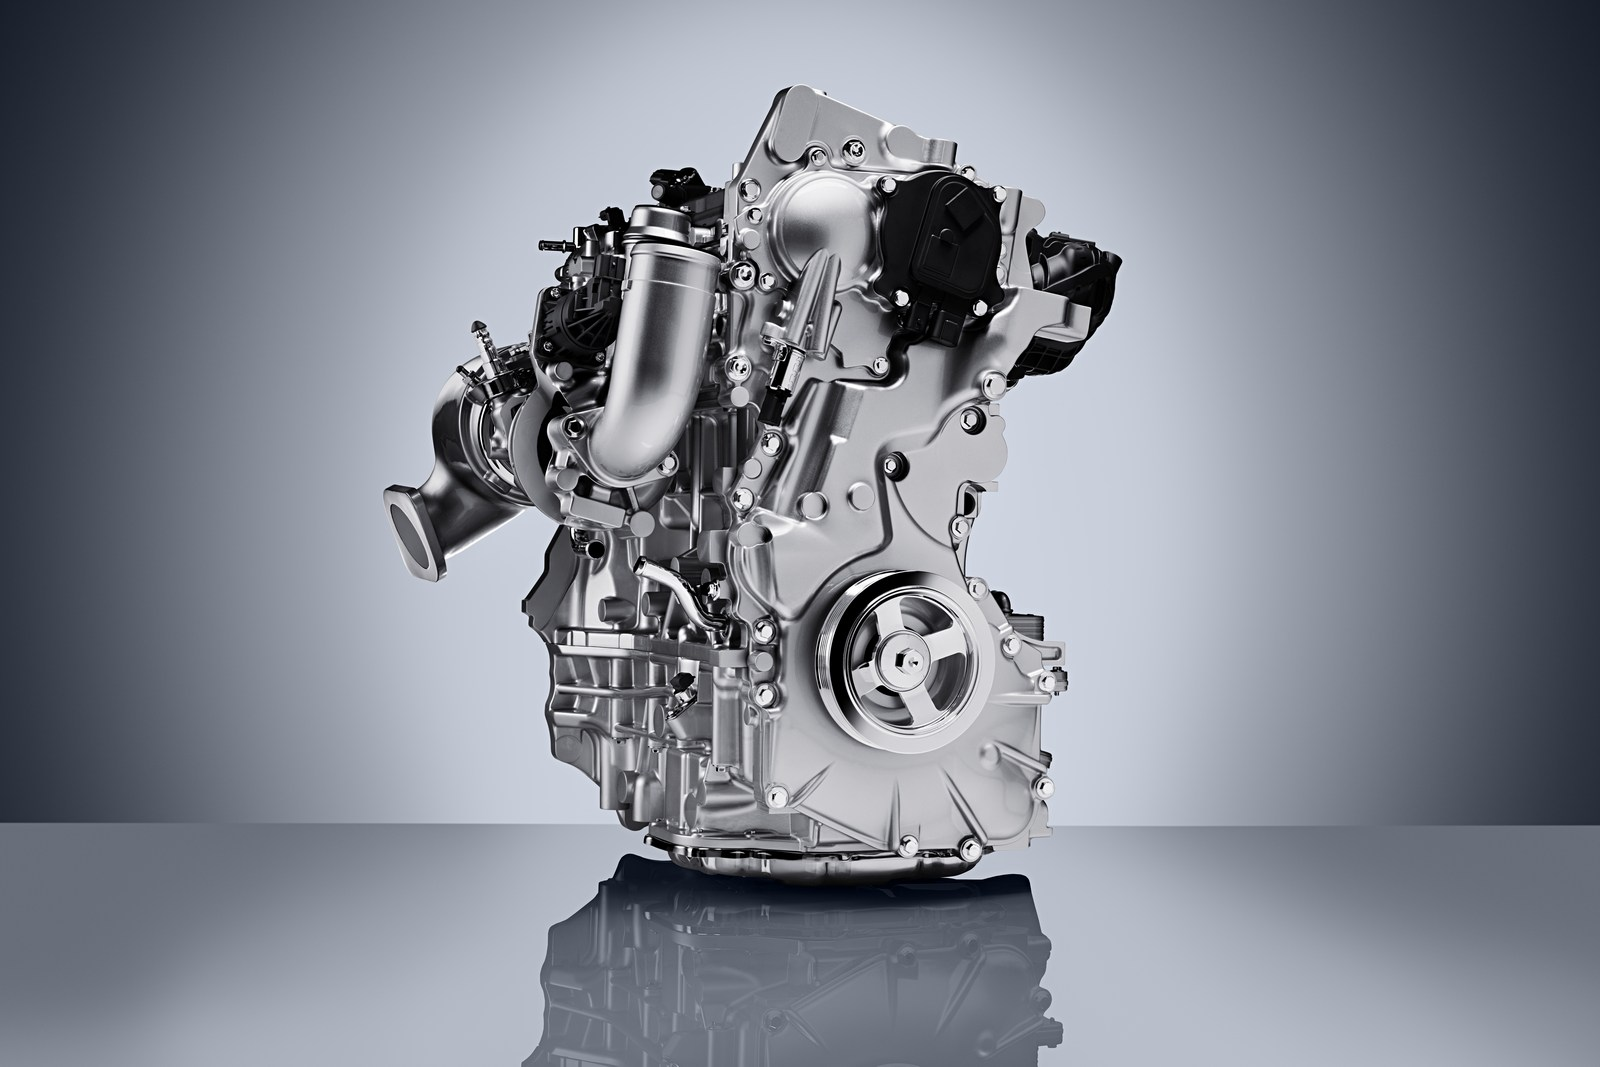 The INFINITI VC-Turbo is the world's first production-ready variable compression ratio engine. Shown for the first time at the 2016 Mondial de l'Automobile in Paris, the four-cylinder VC-Turbo promises to be one of the most advanced internal combustion engines ever created.